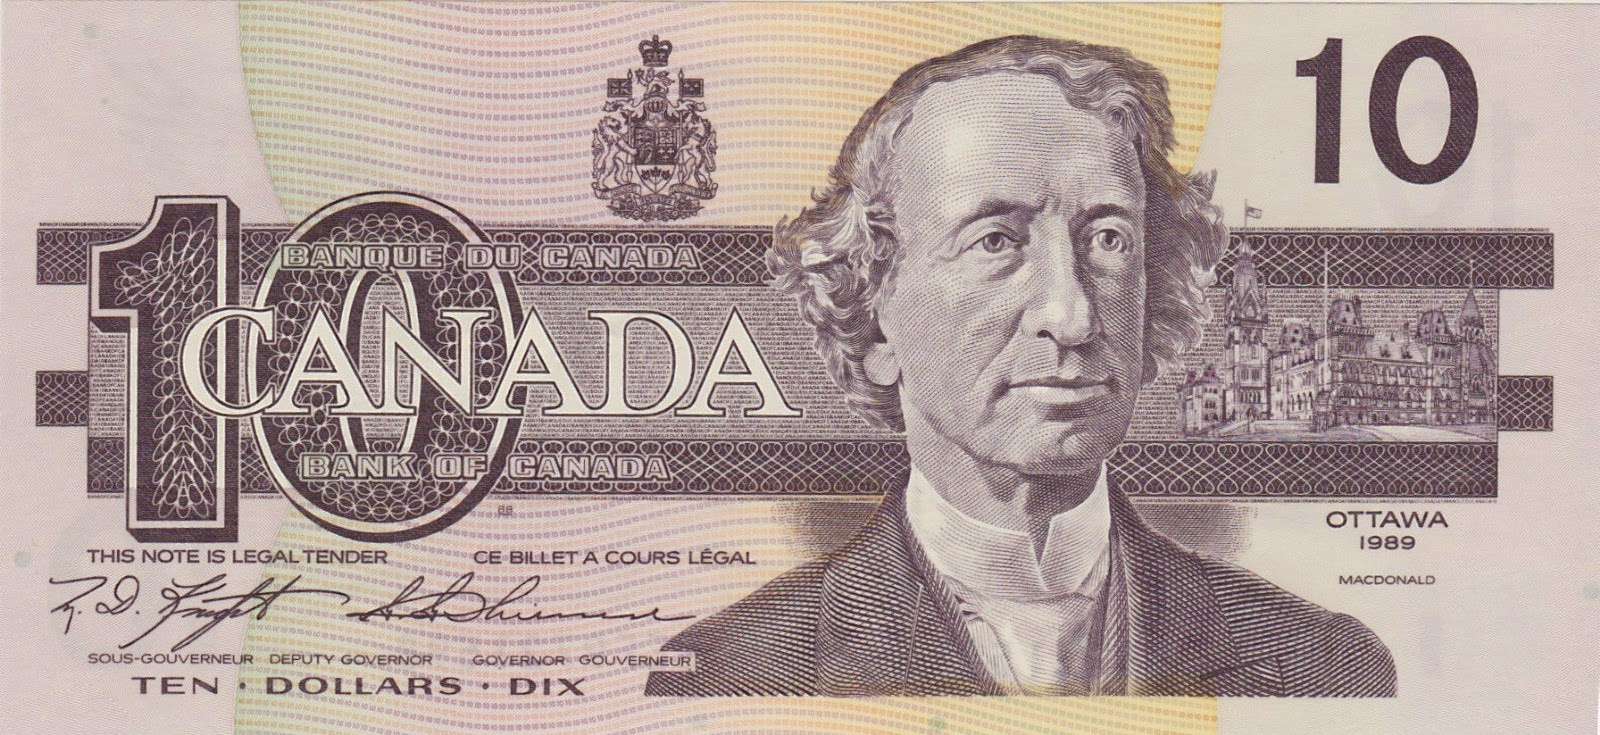 john a macdonald essay Sir john a macdonald has a prominent place in our history he was a successful lawyer from humble beginnings a husband whose two marriages were marred by personal tragedies a backroom politician repeatedly linked to scandals, and a forceful party leader whose contribution to his country was incalculable.